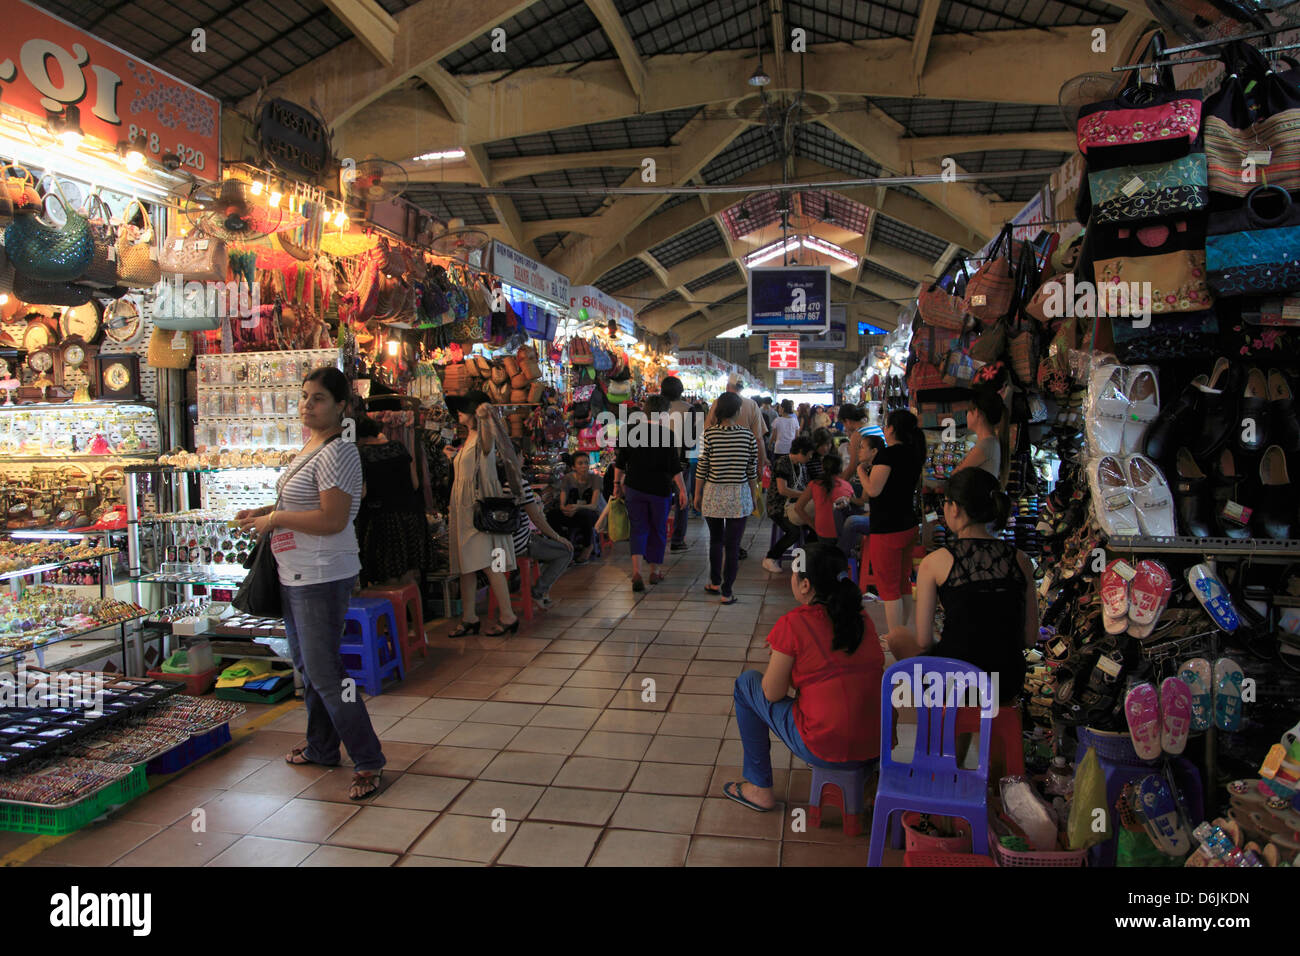 Ben Thanh Market, Ho Chi Minh City (Saigon), Vietnam, Indochina, Southeast Asia, Asia - Stock Image